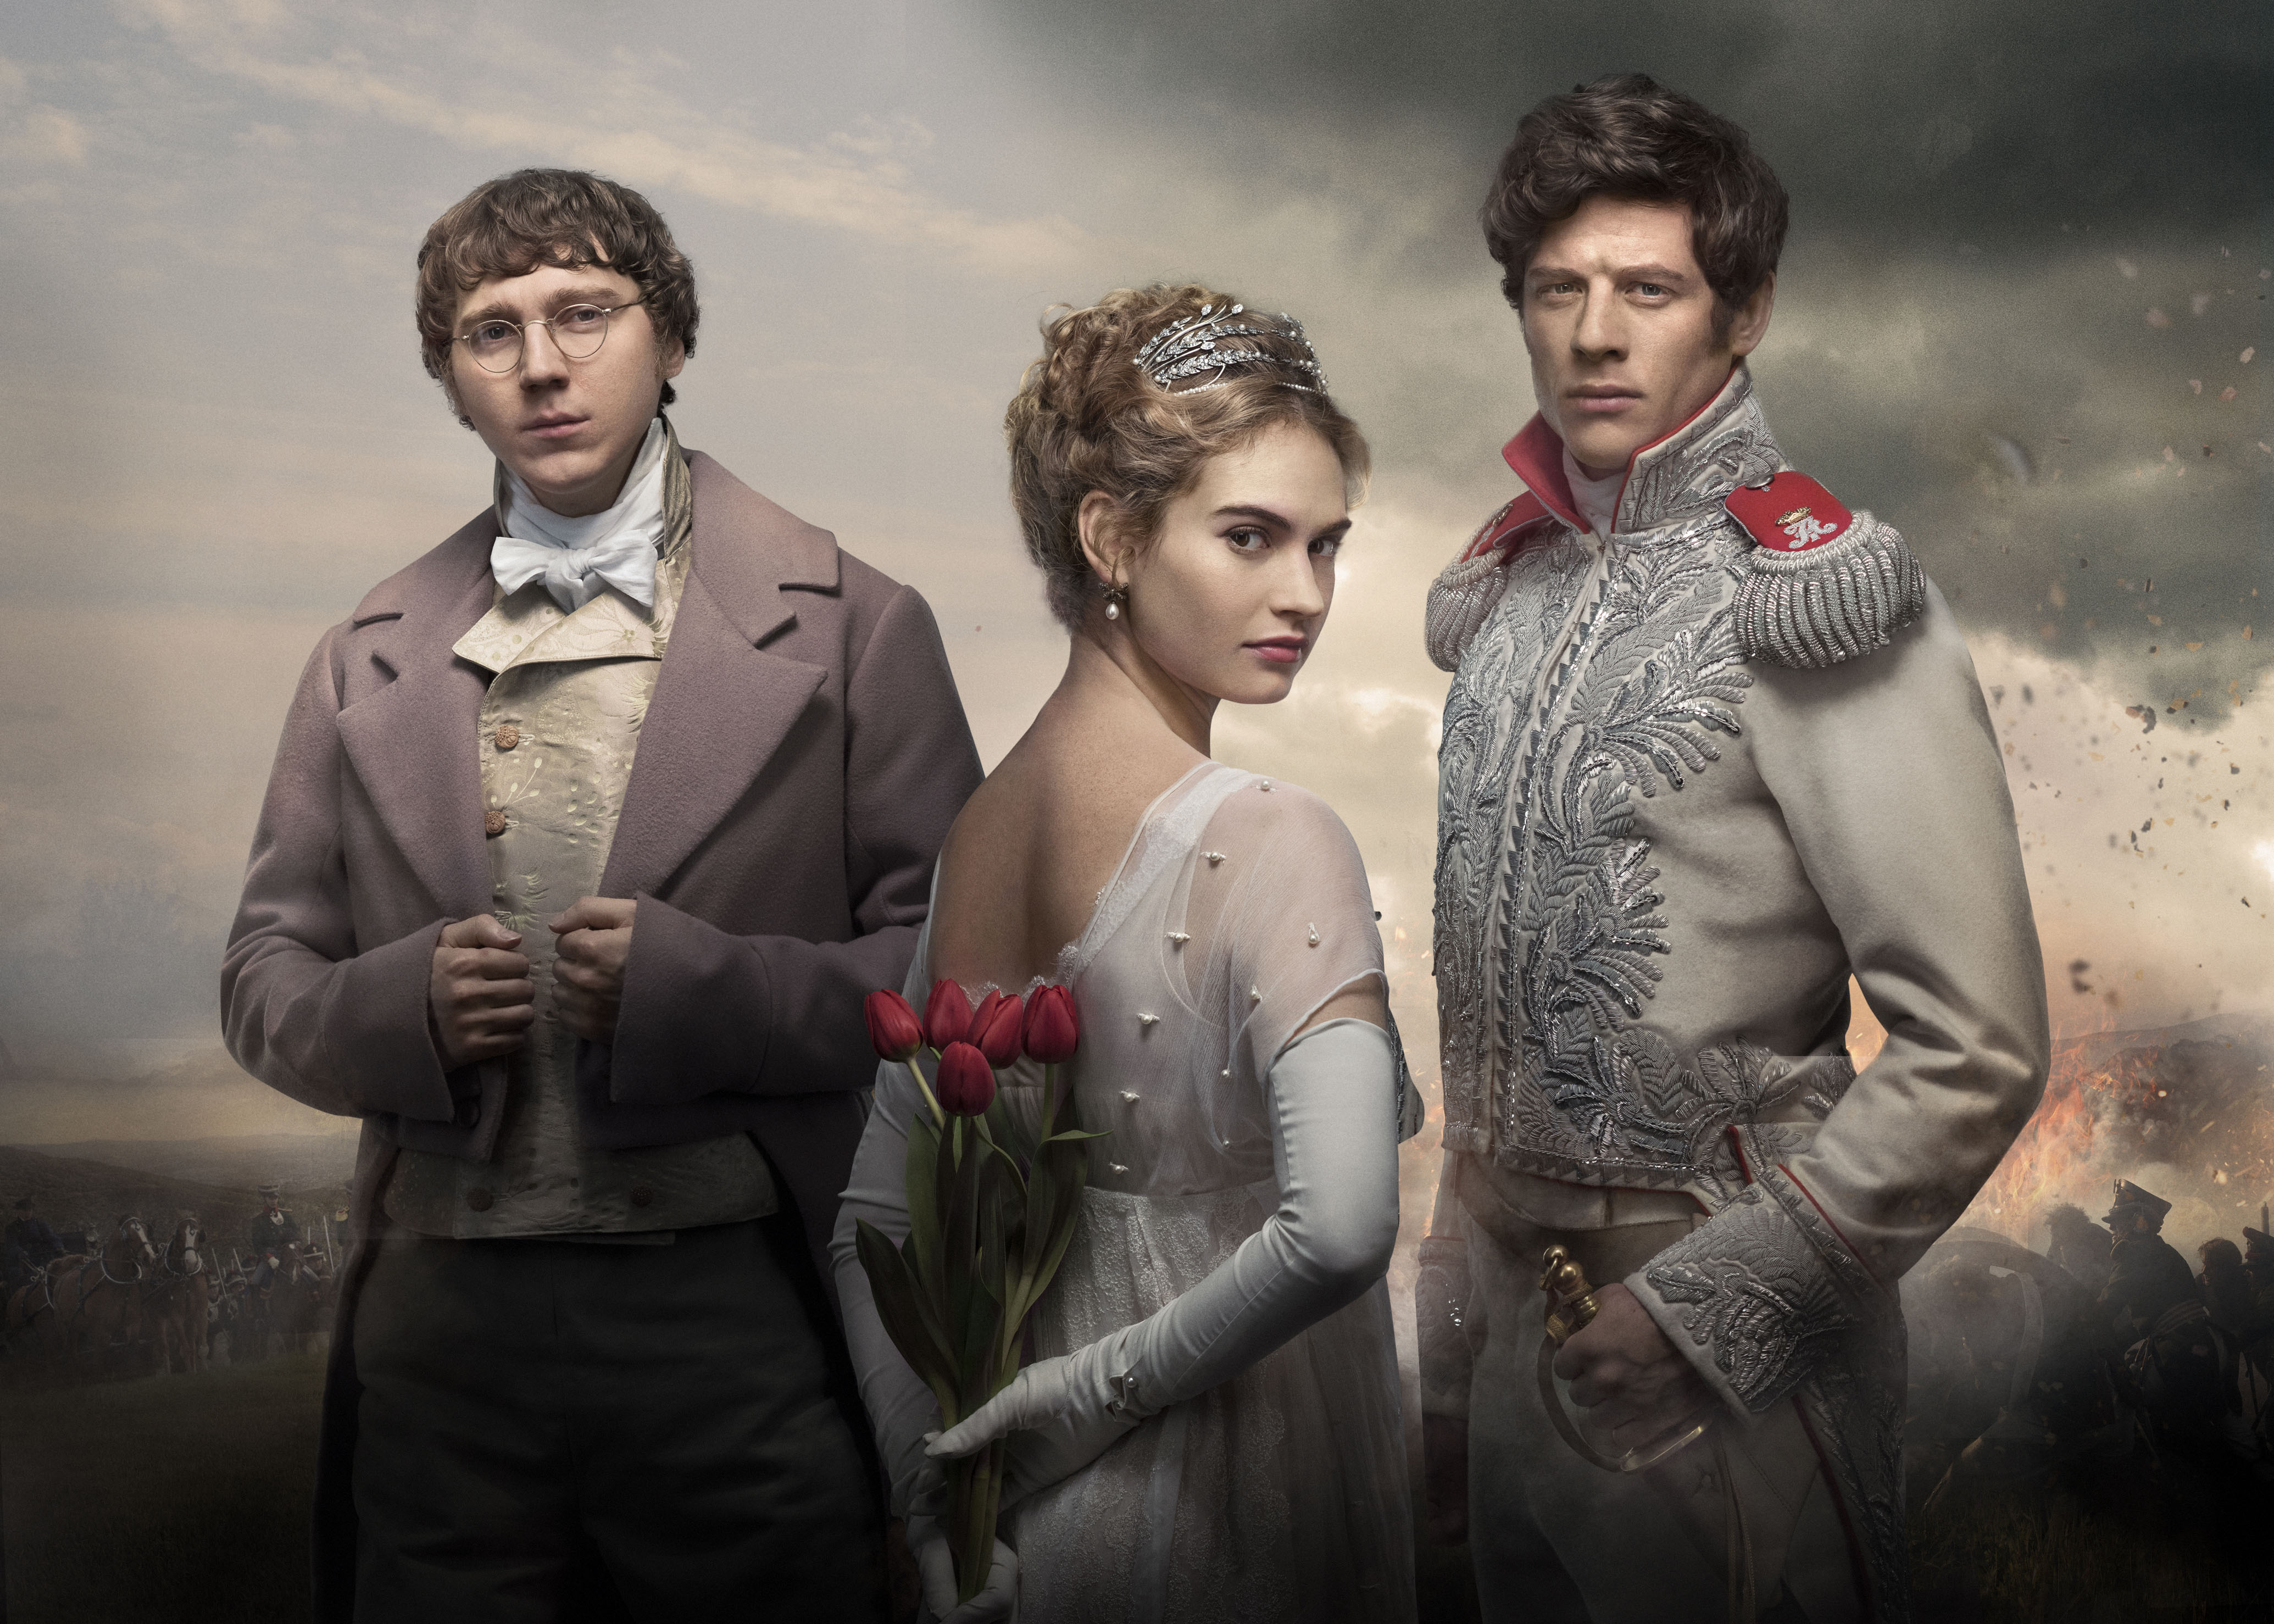 First look at epic BBC drama War & Peace as a tiara-clad Lily James stands with Paul Dano and James Norton